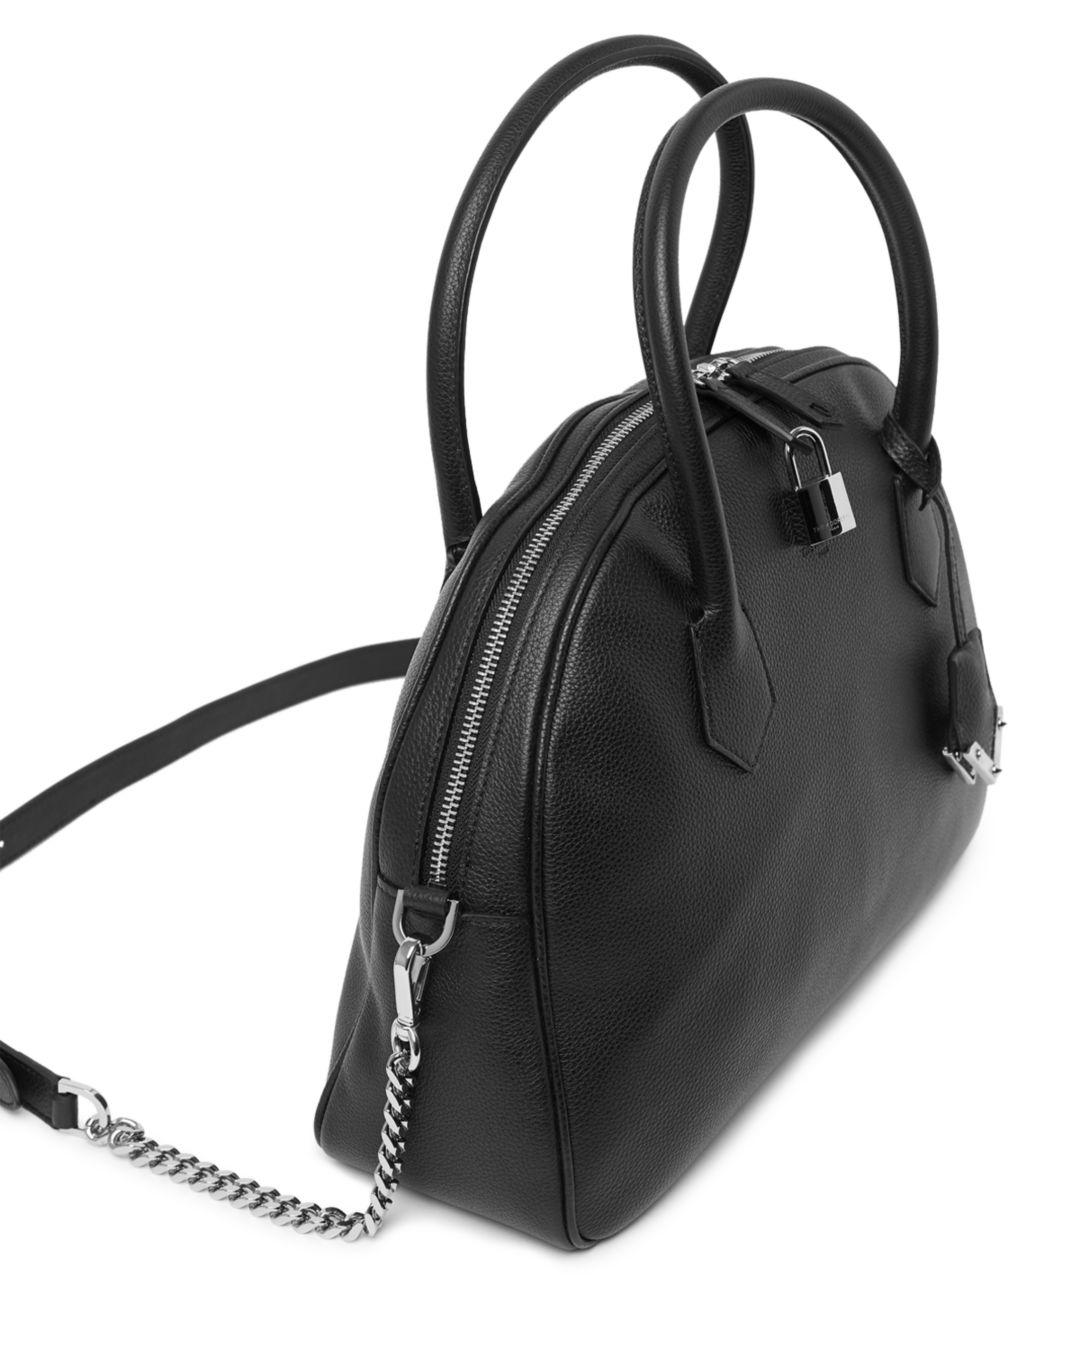 95051760ec4f Lyst - The Kooples Irina Medium Leather Crossbody Bag in Black